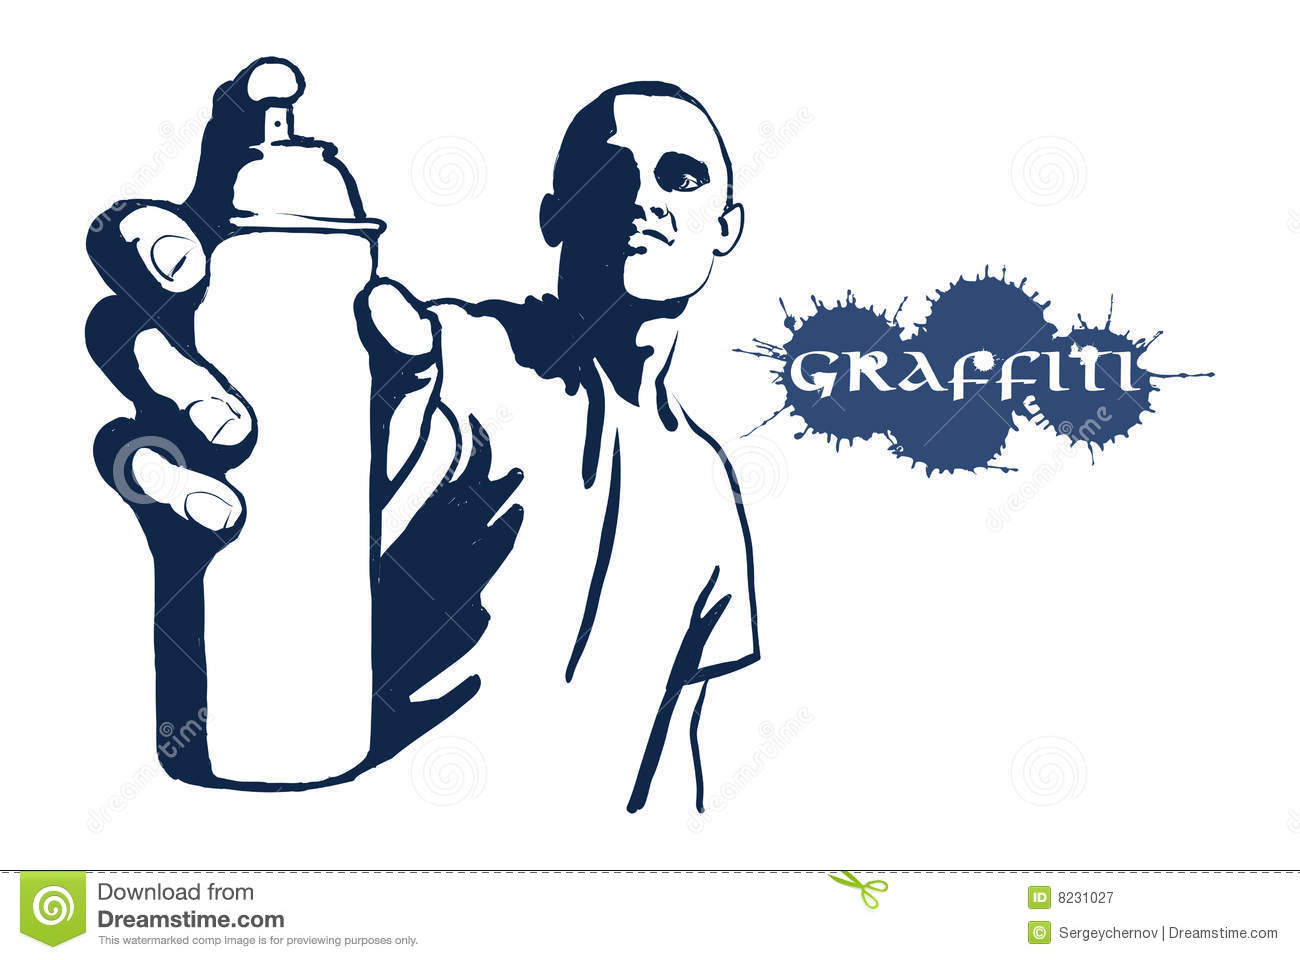 7 Graffiti Spray Can Vector Images Spray Paint Can Silhouette Graffiti Spray Can And Graffiti